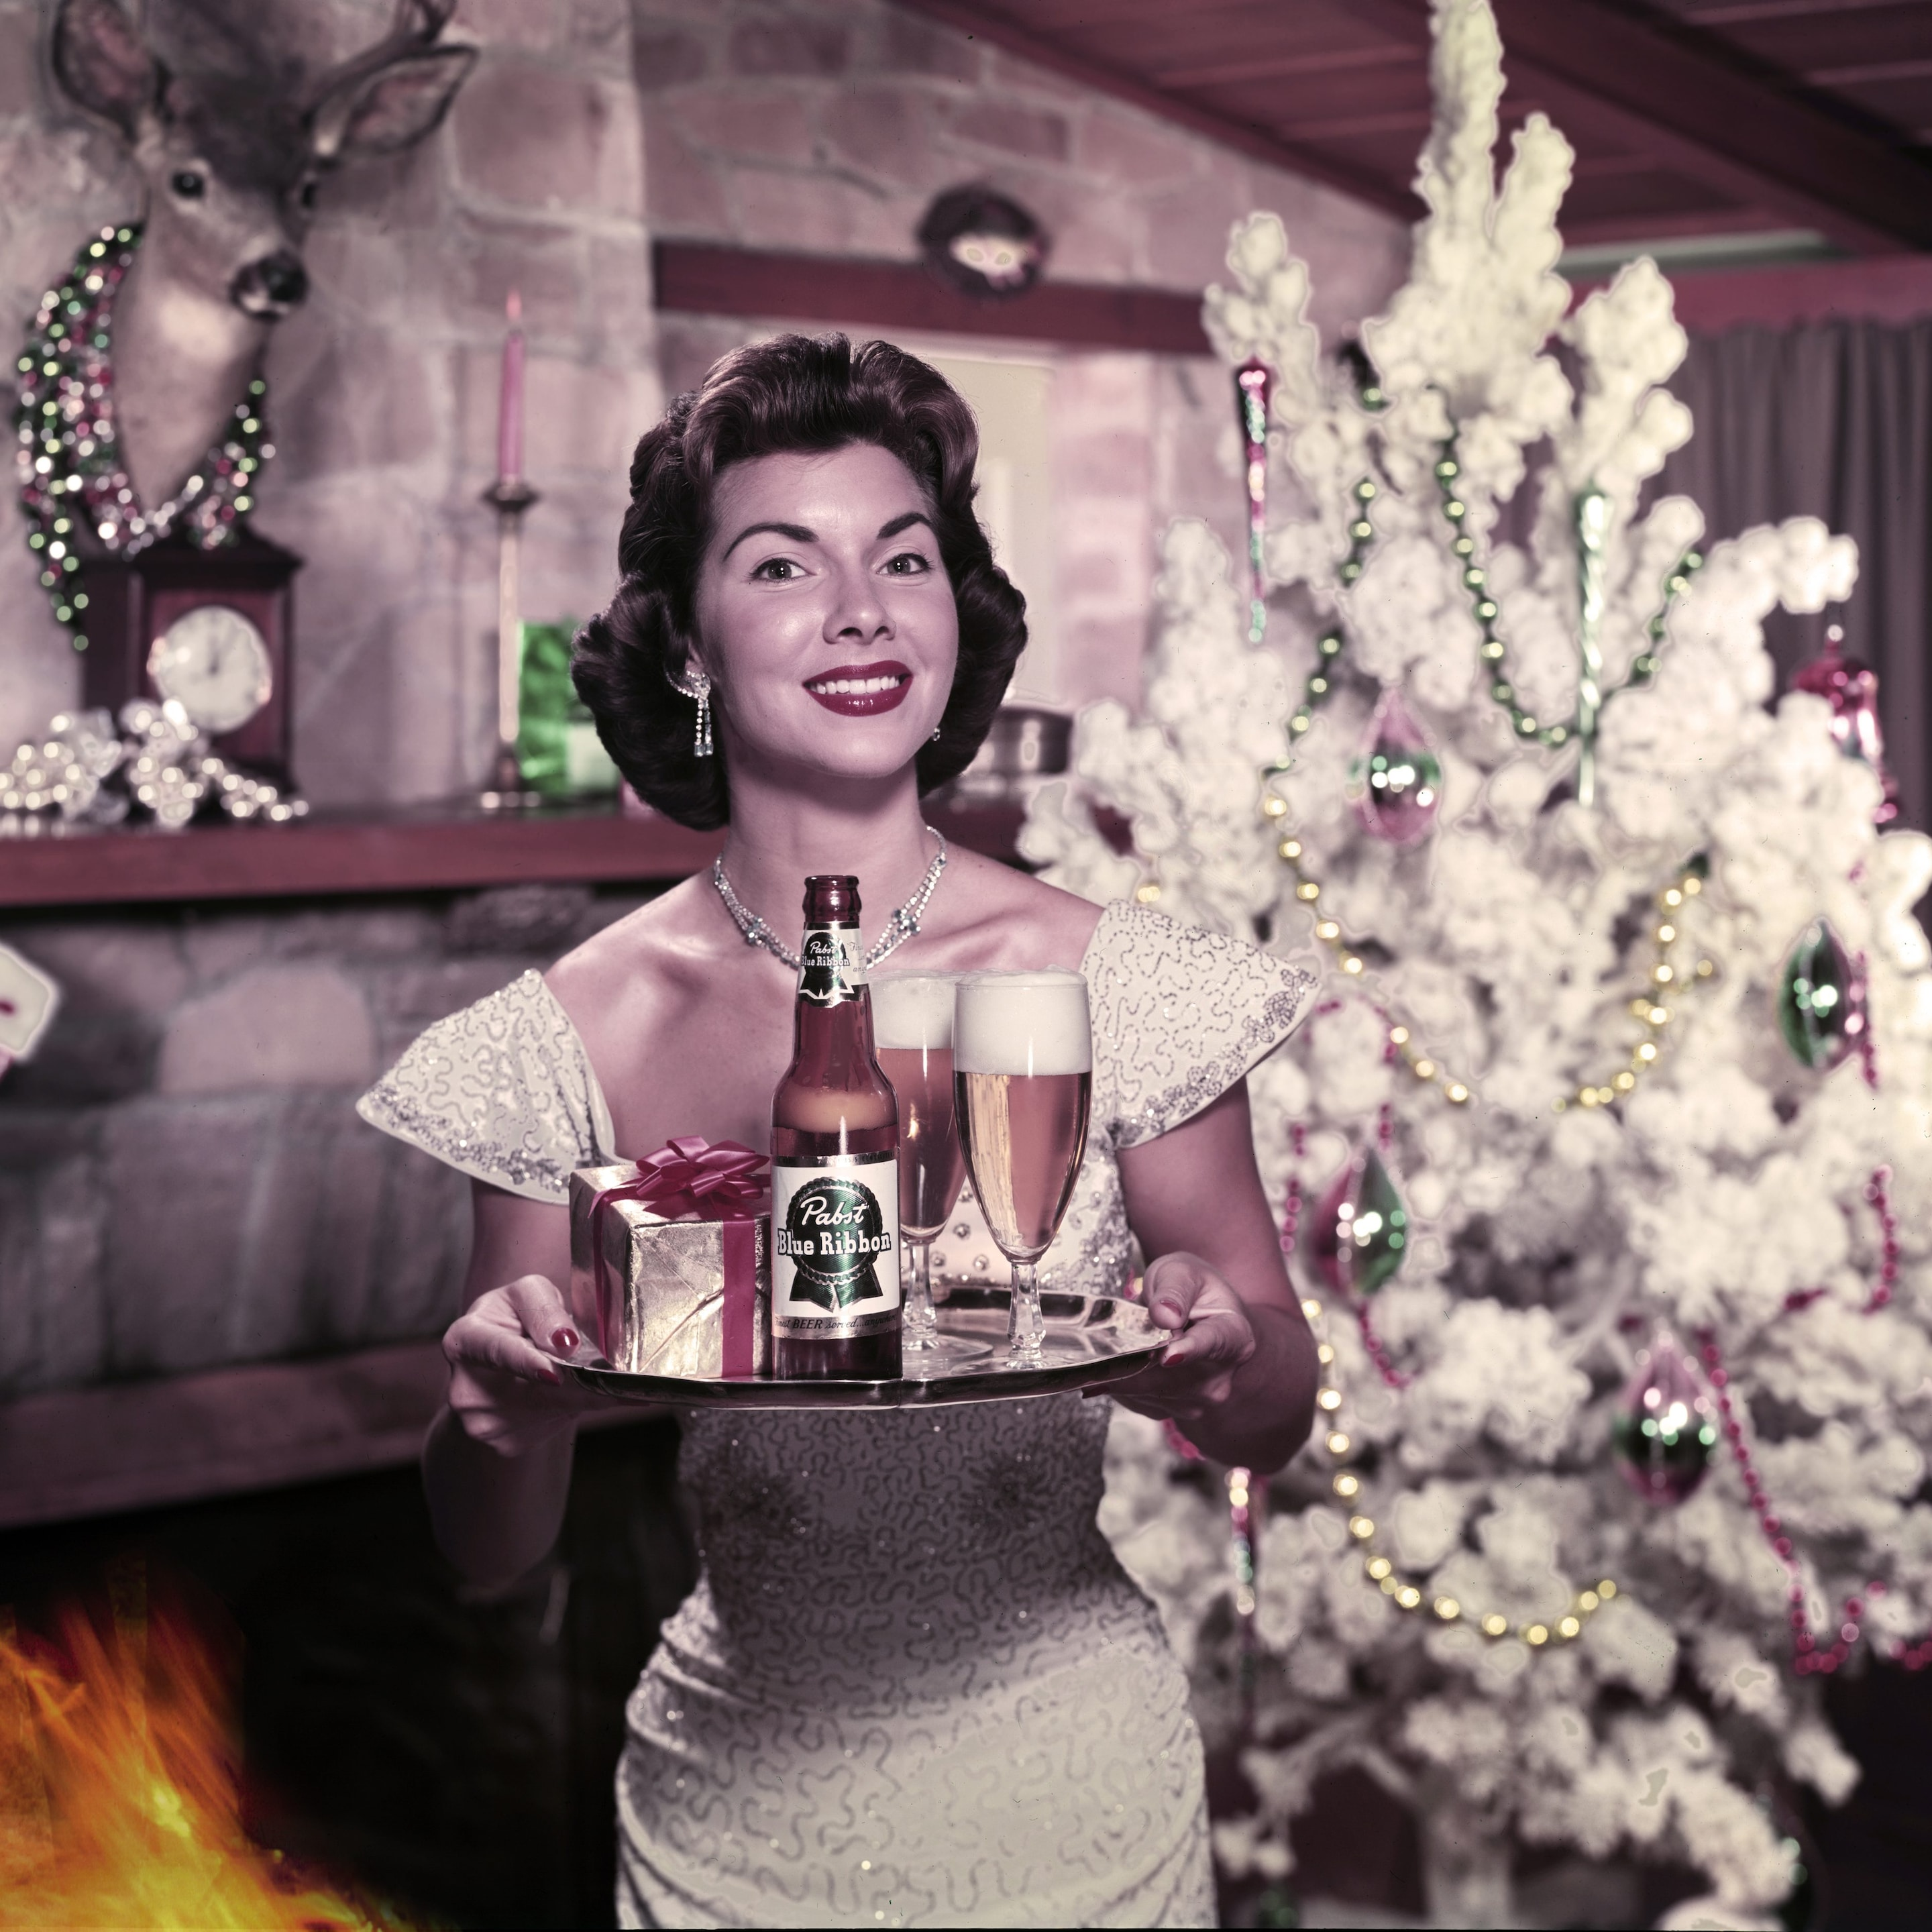 Why Does Christmas Turn Modern Women Into 1950s Housewives